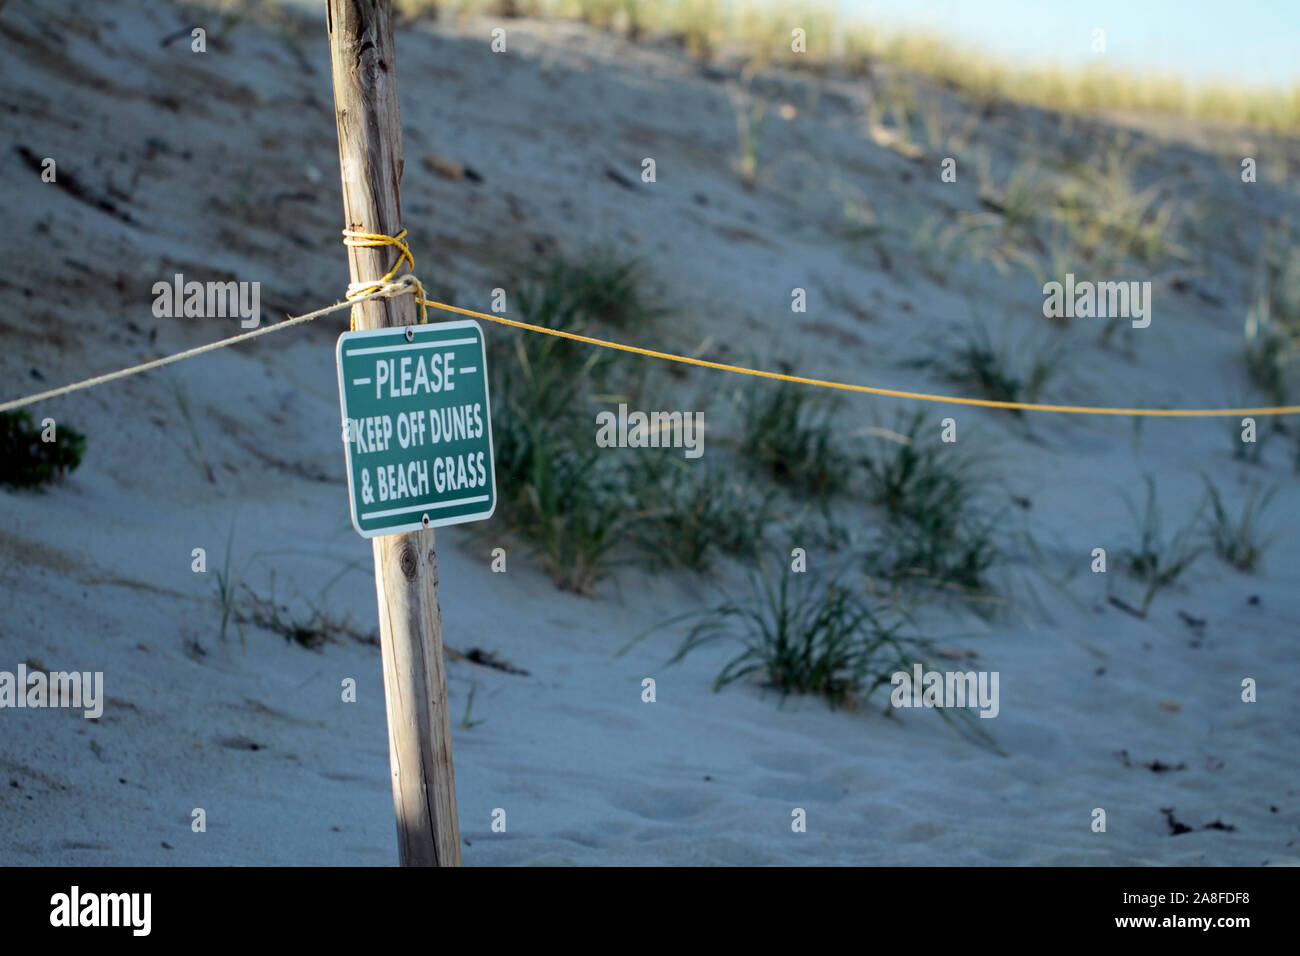 Roped off area with posted warning sign marking protected sand dunes and beach grass at Nauset Beach, Orleans, Massachusetts Stock Photo